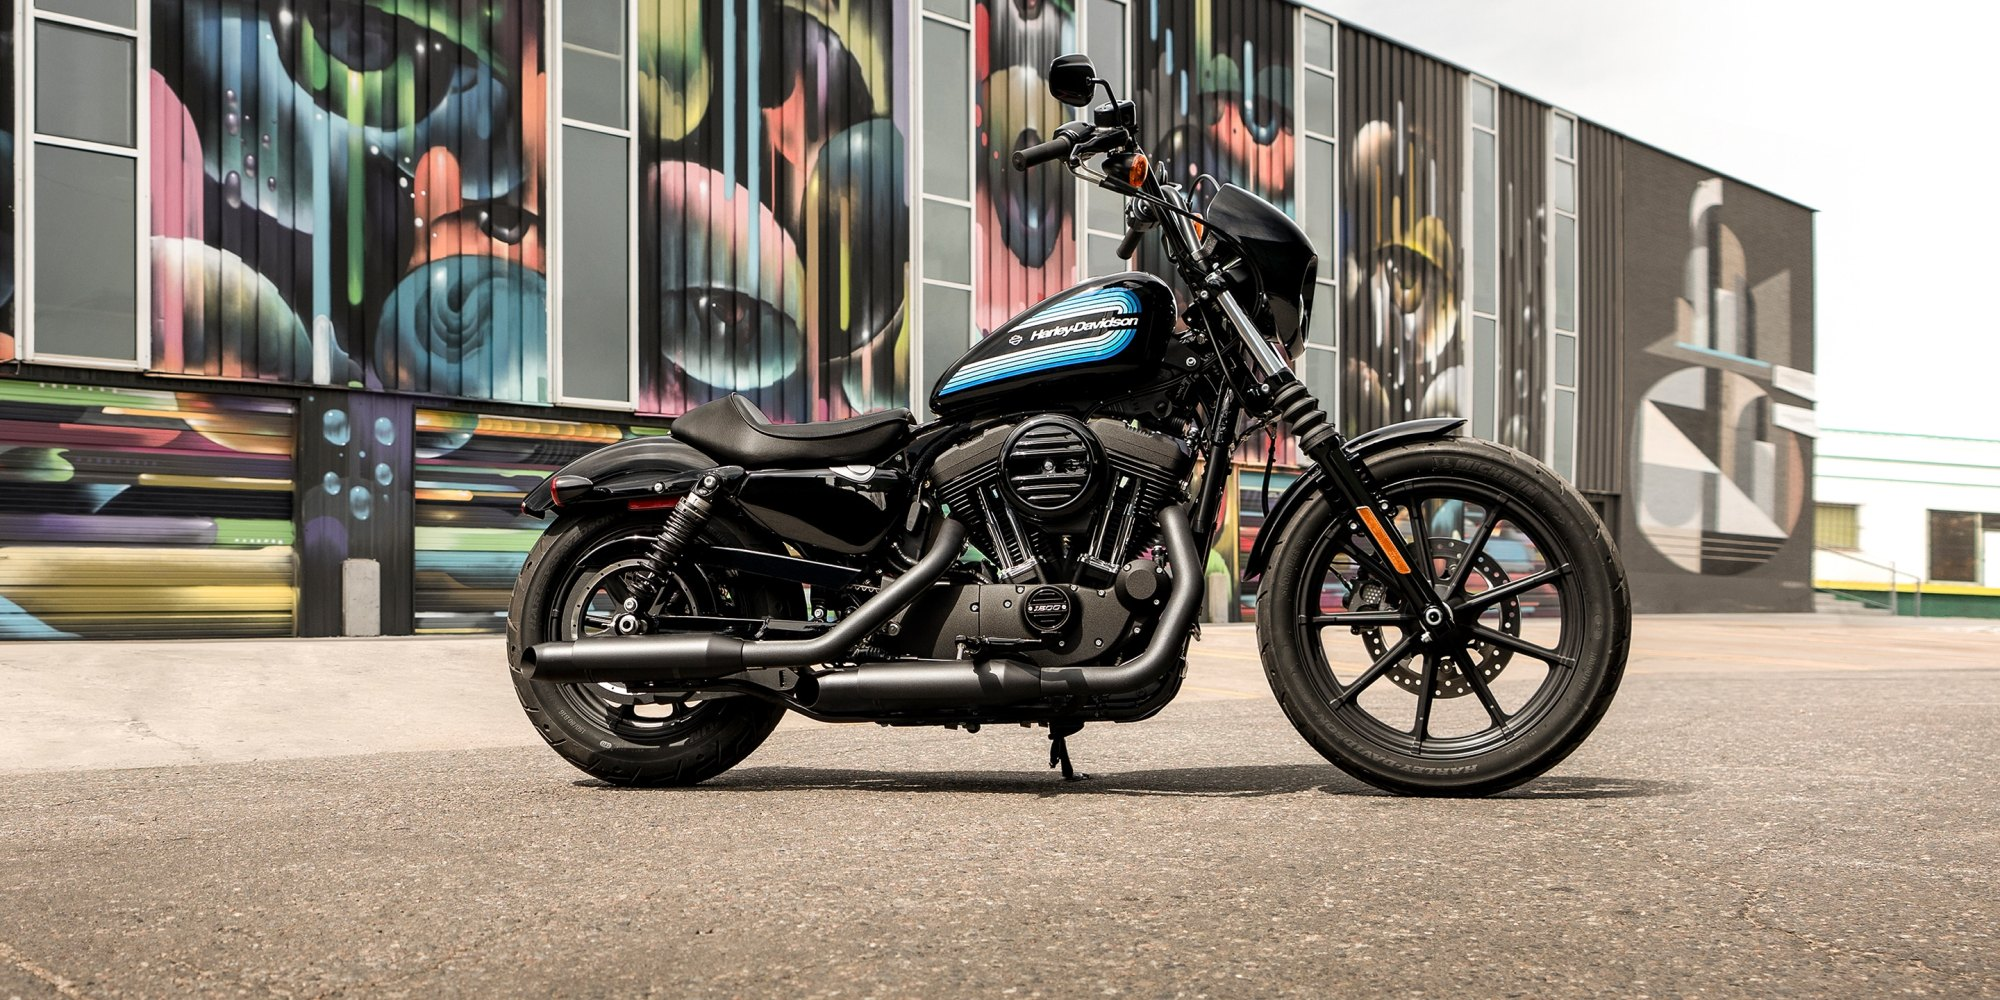 hight resolution of 2019 iron 1200 motorcycle parked in front of a graffiti wall